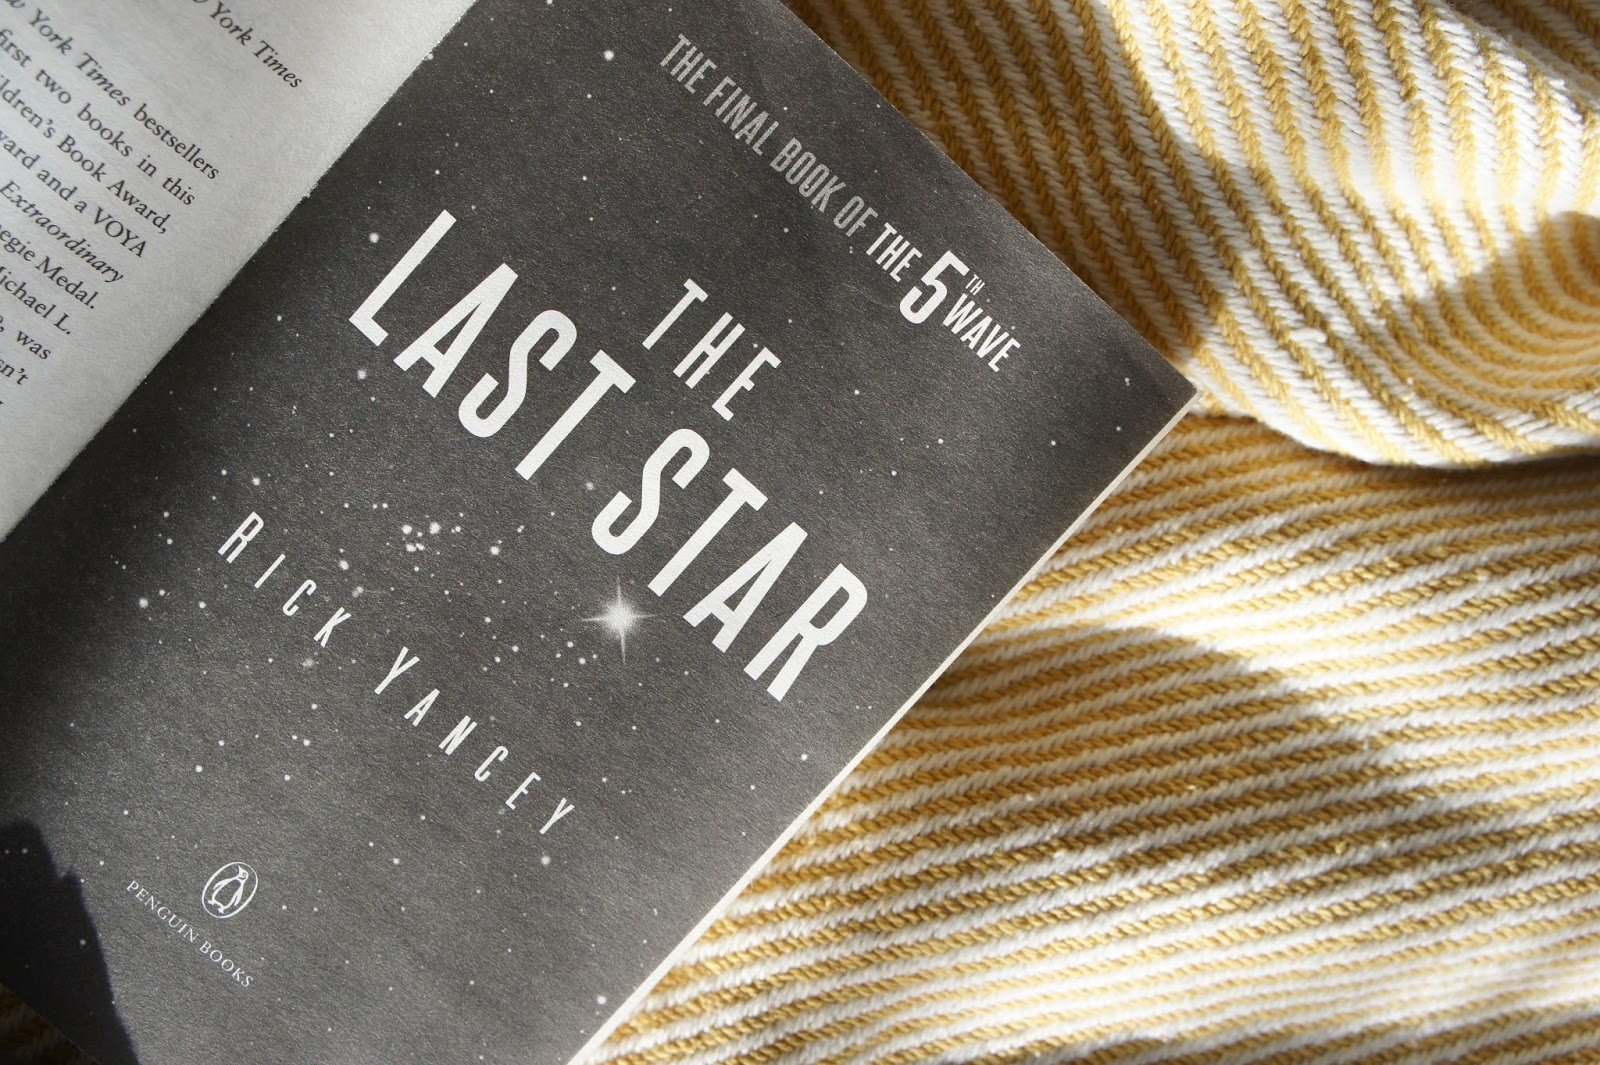 blogger's bookshelf the last star